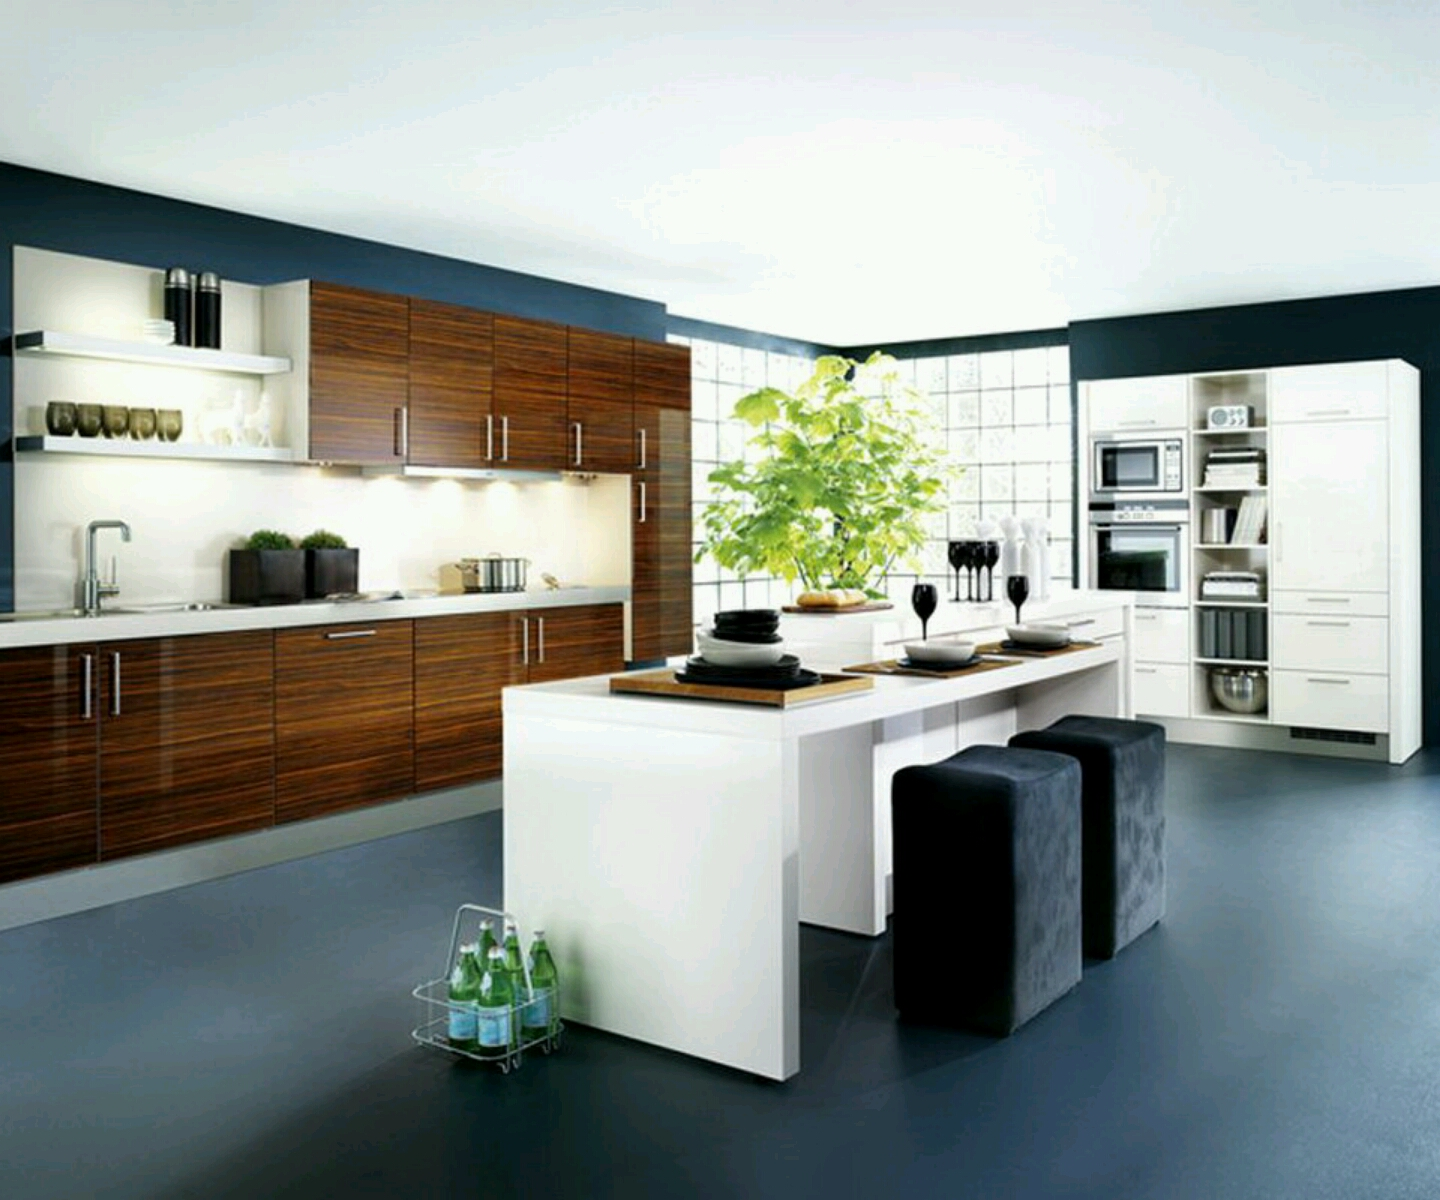 new home designs latest kitchen cabinets designs modern On modern kitchen furniture